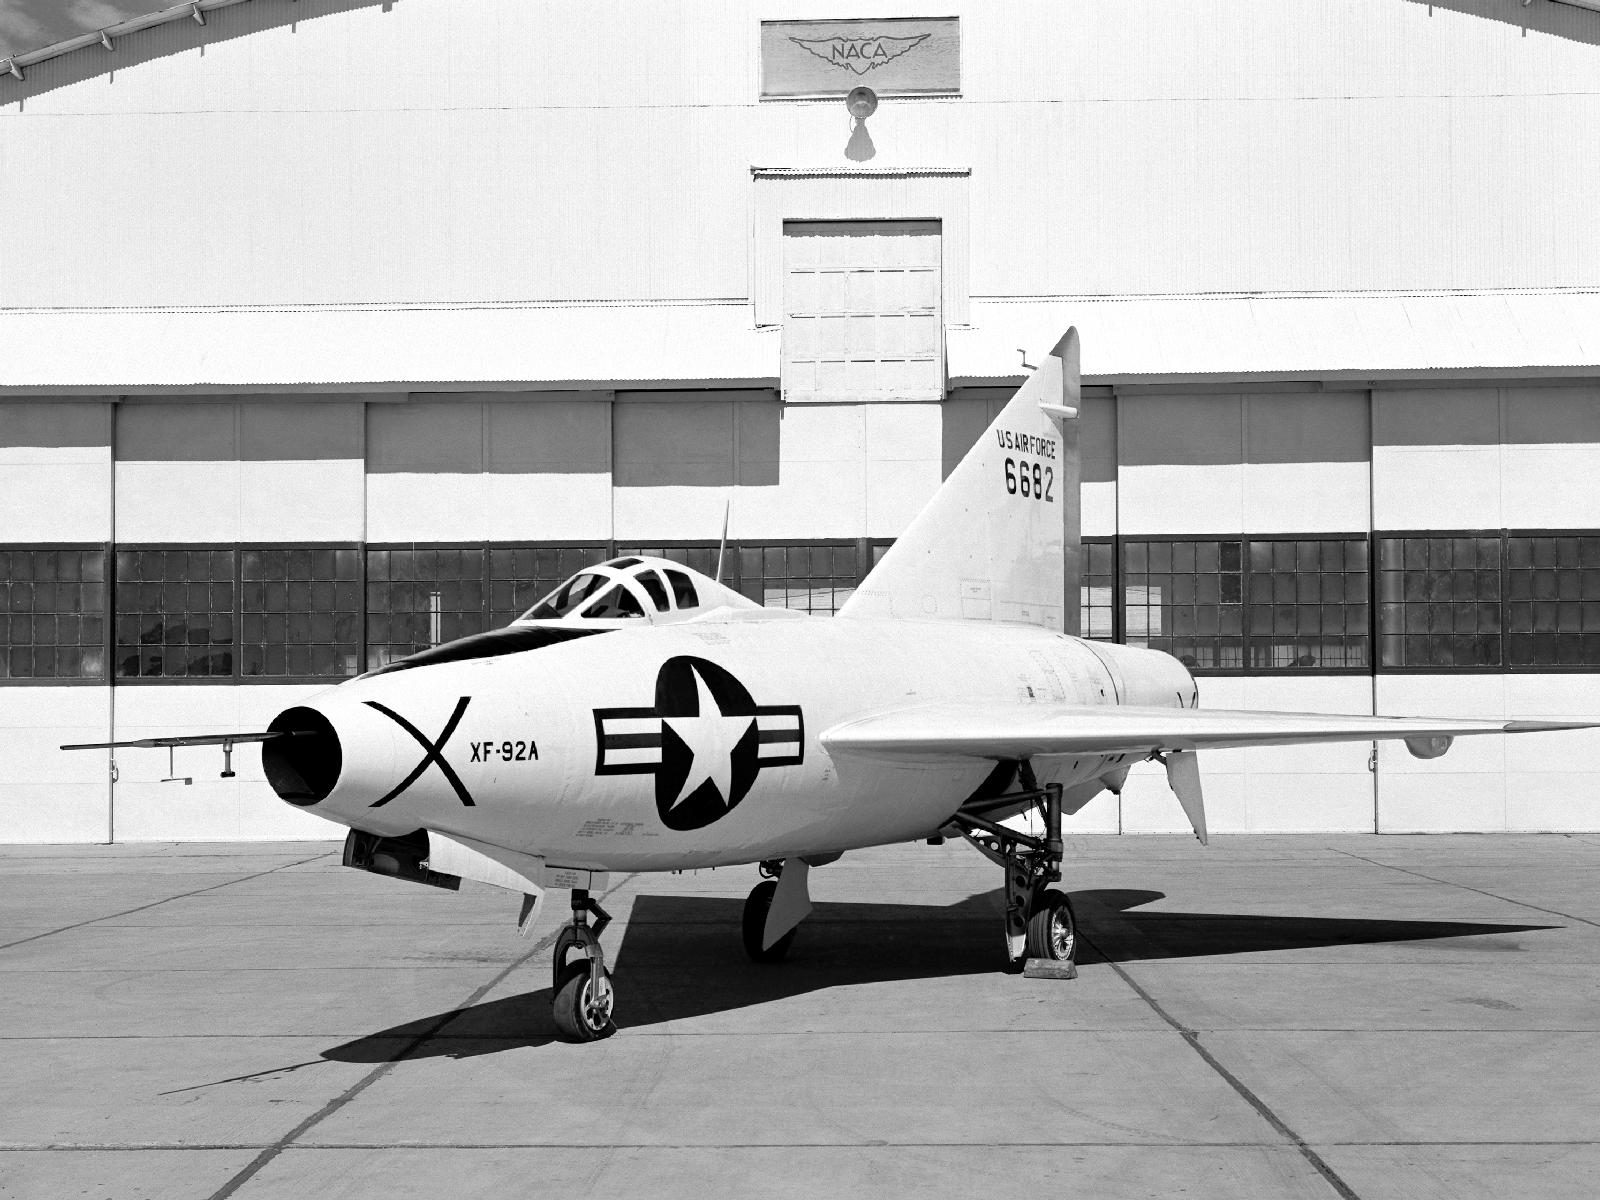 XF-92A